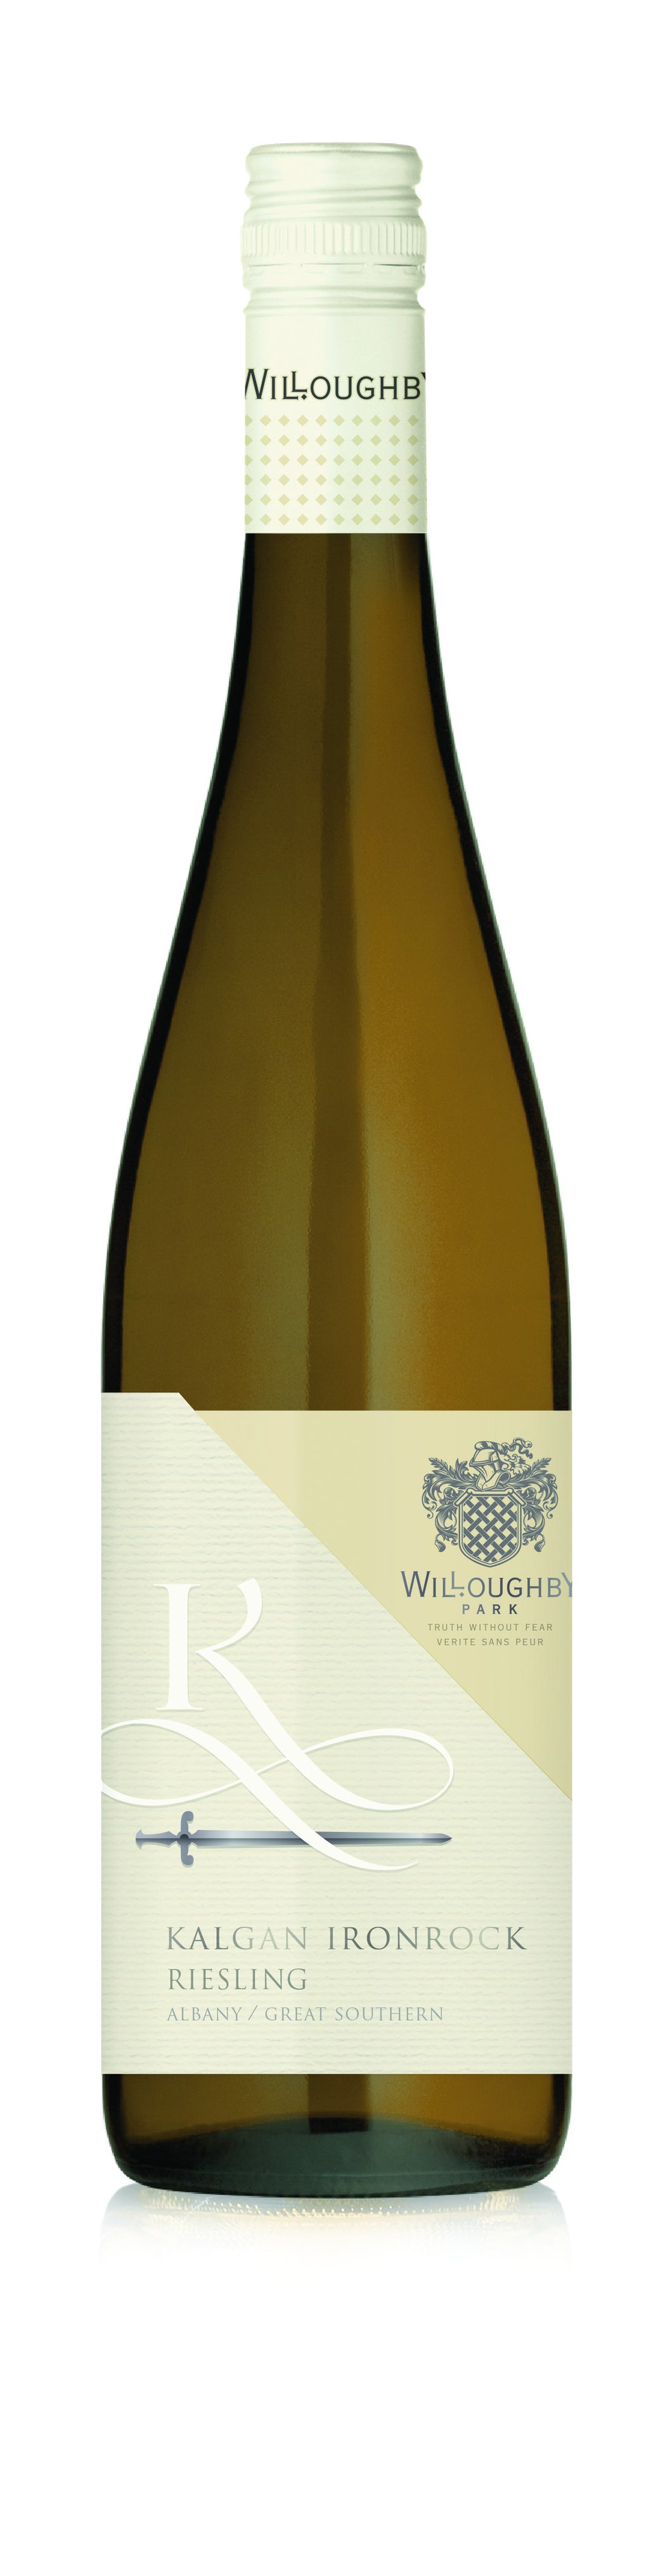 Willoughby Park Ironrock Riesling  2016